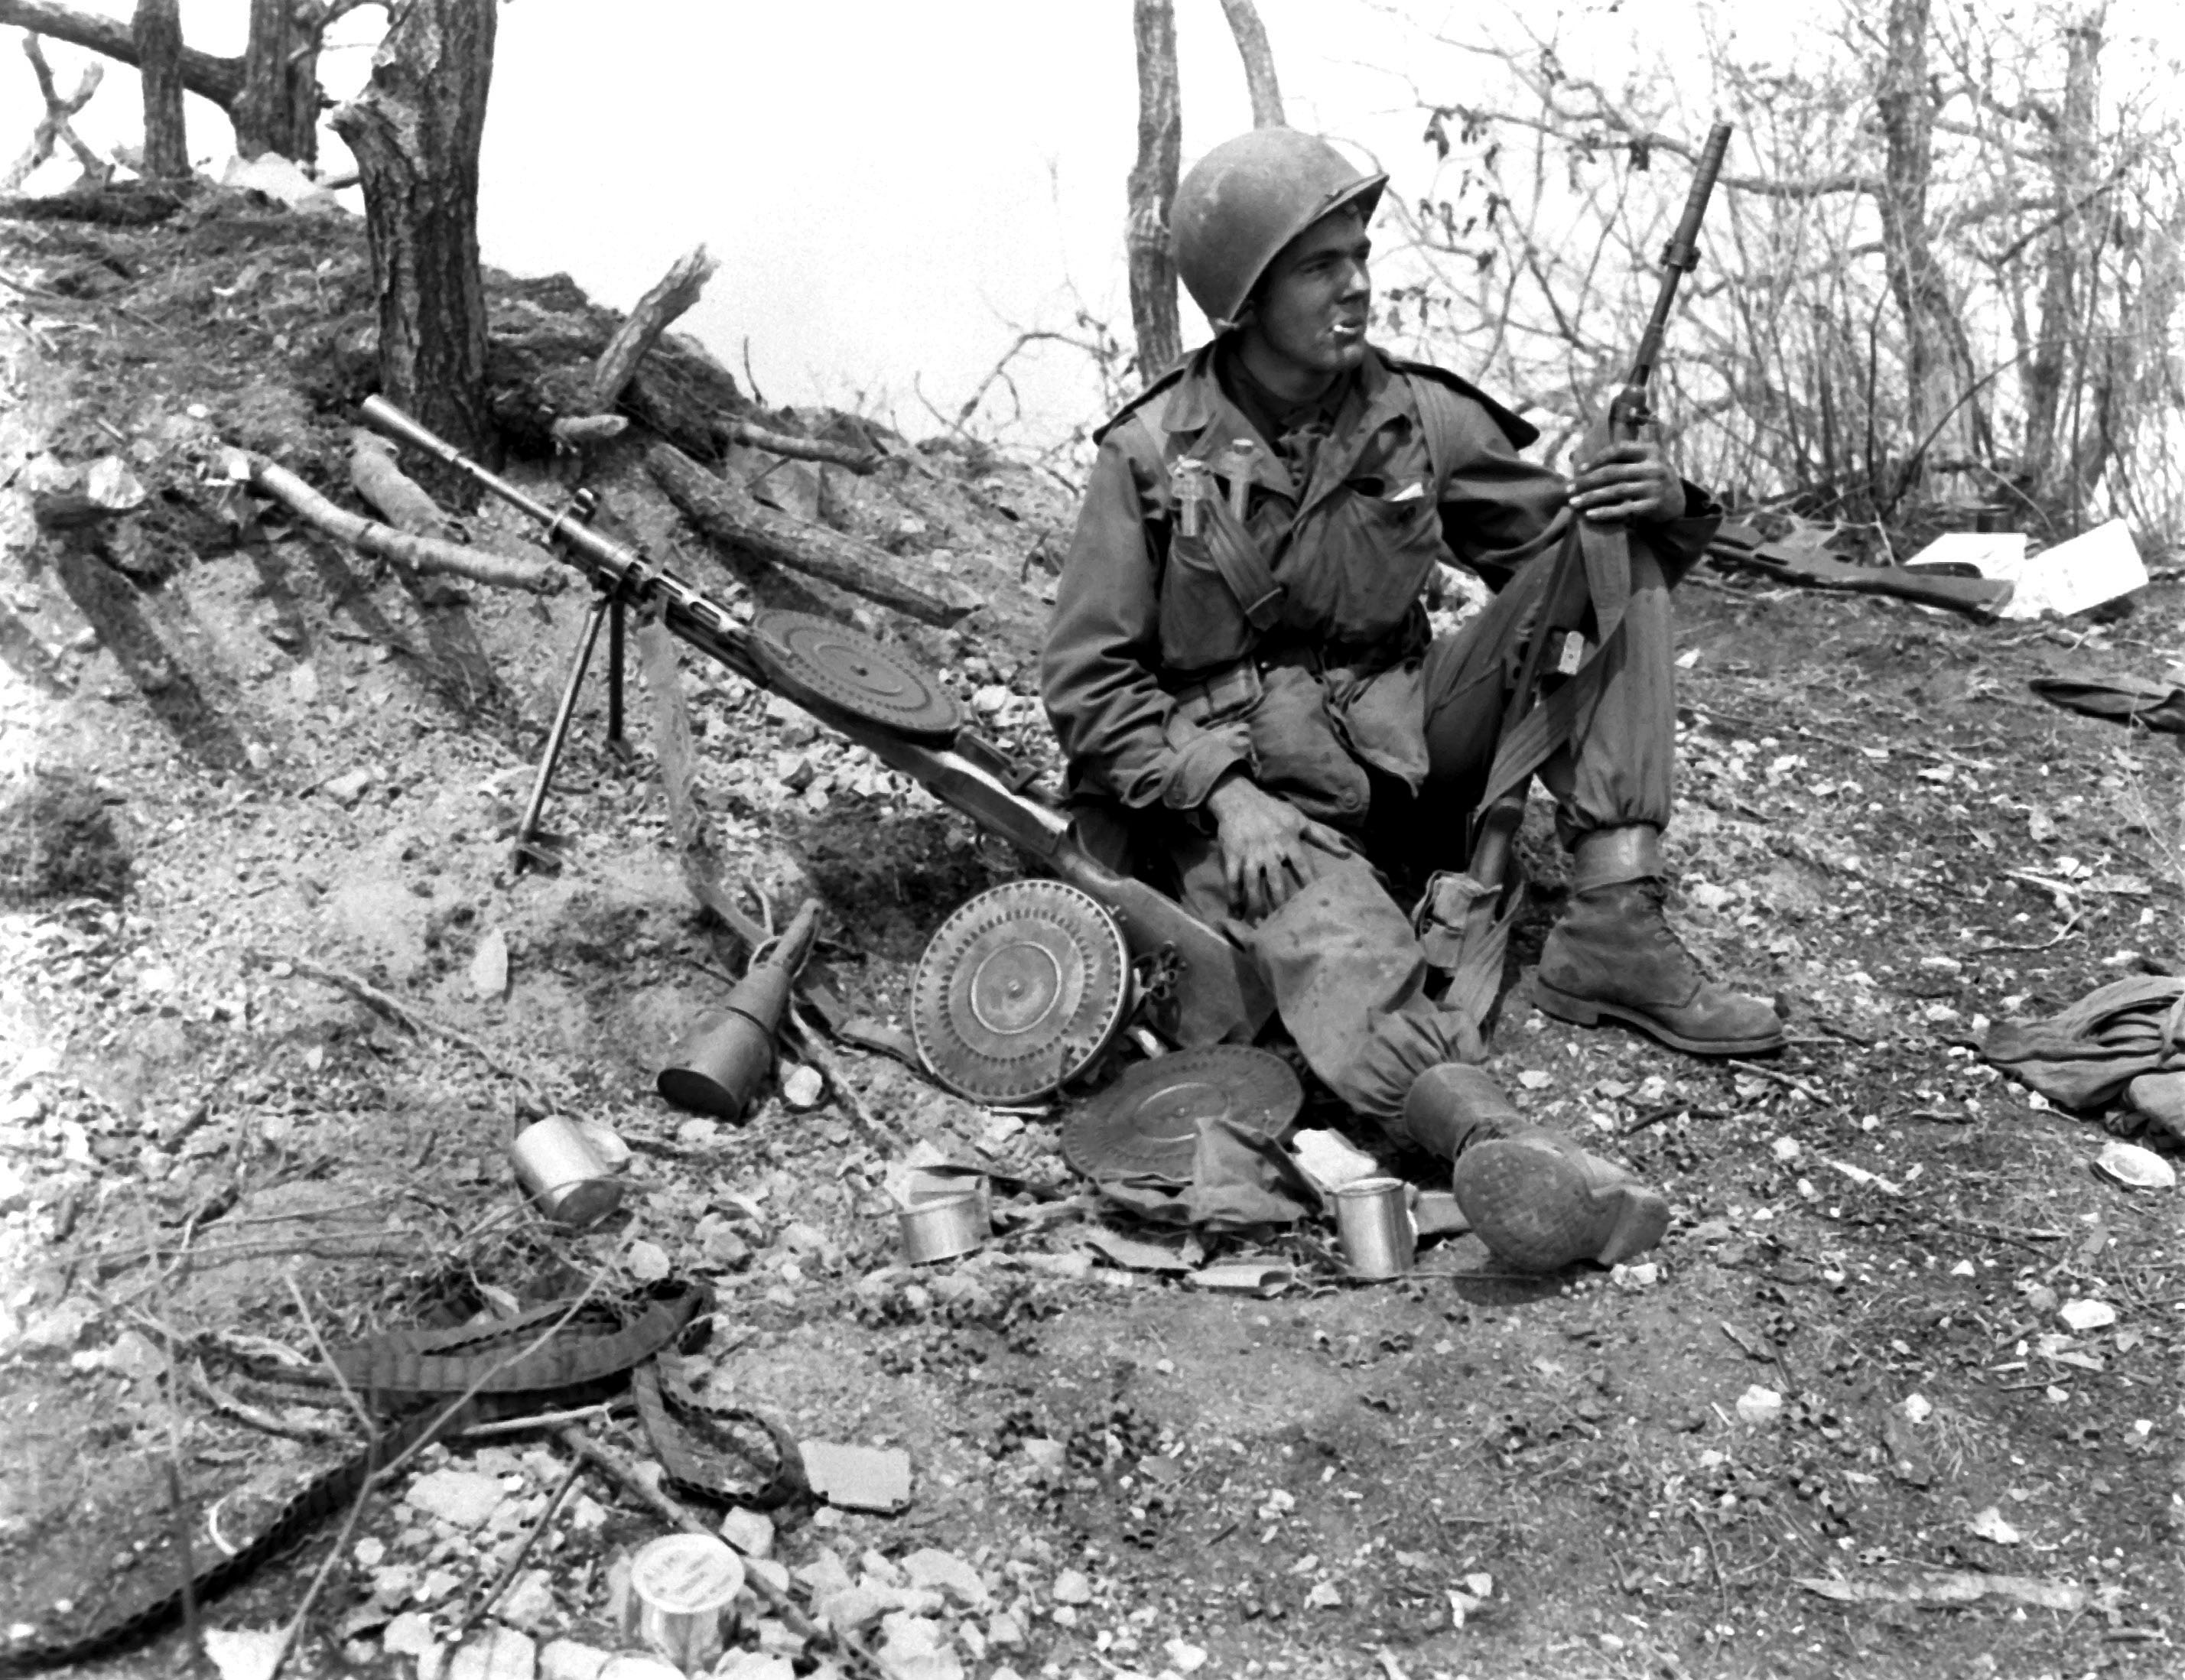 Description korean war ha sn 98 07010